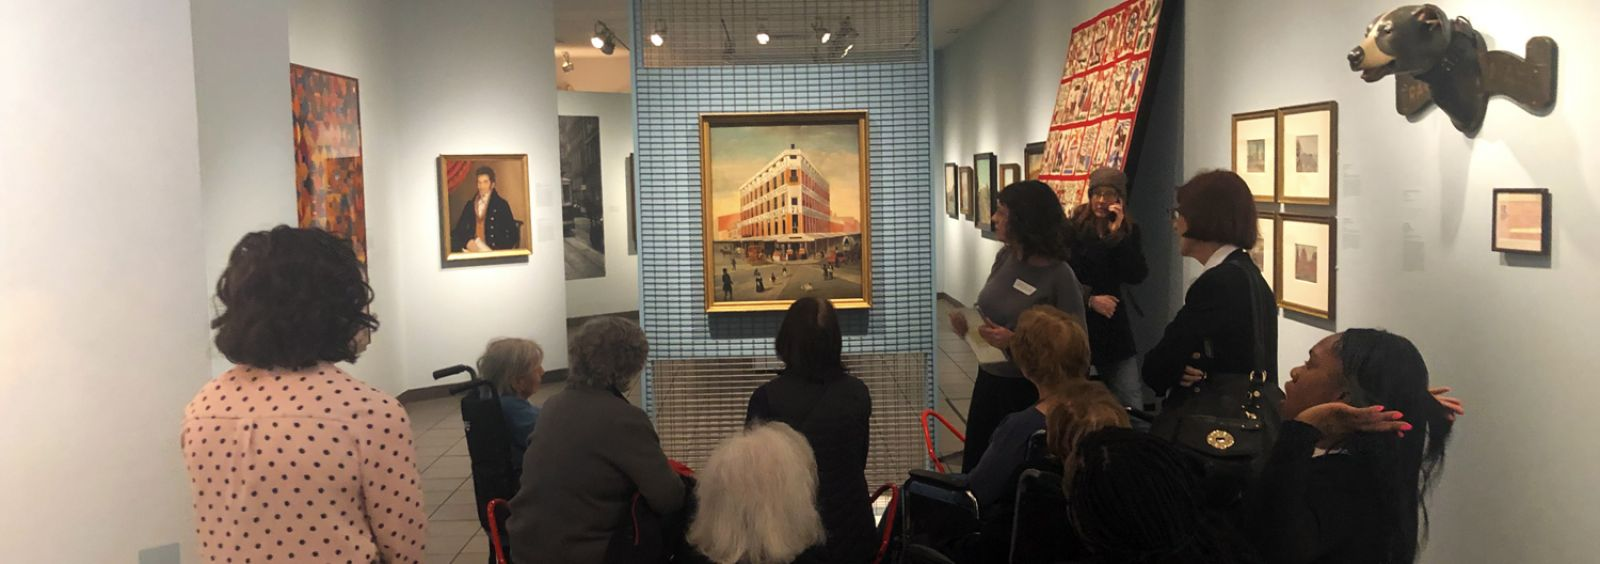 Museum patrons admire art in the American Folk Art Museum's new exhibit ----